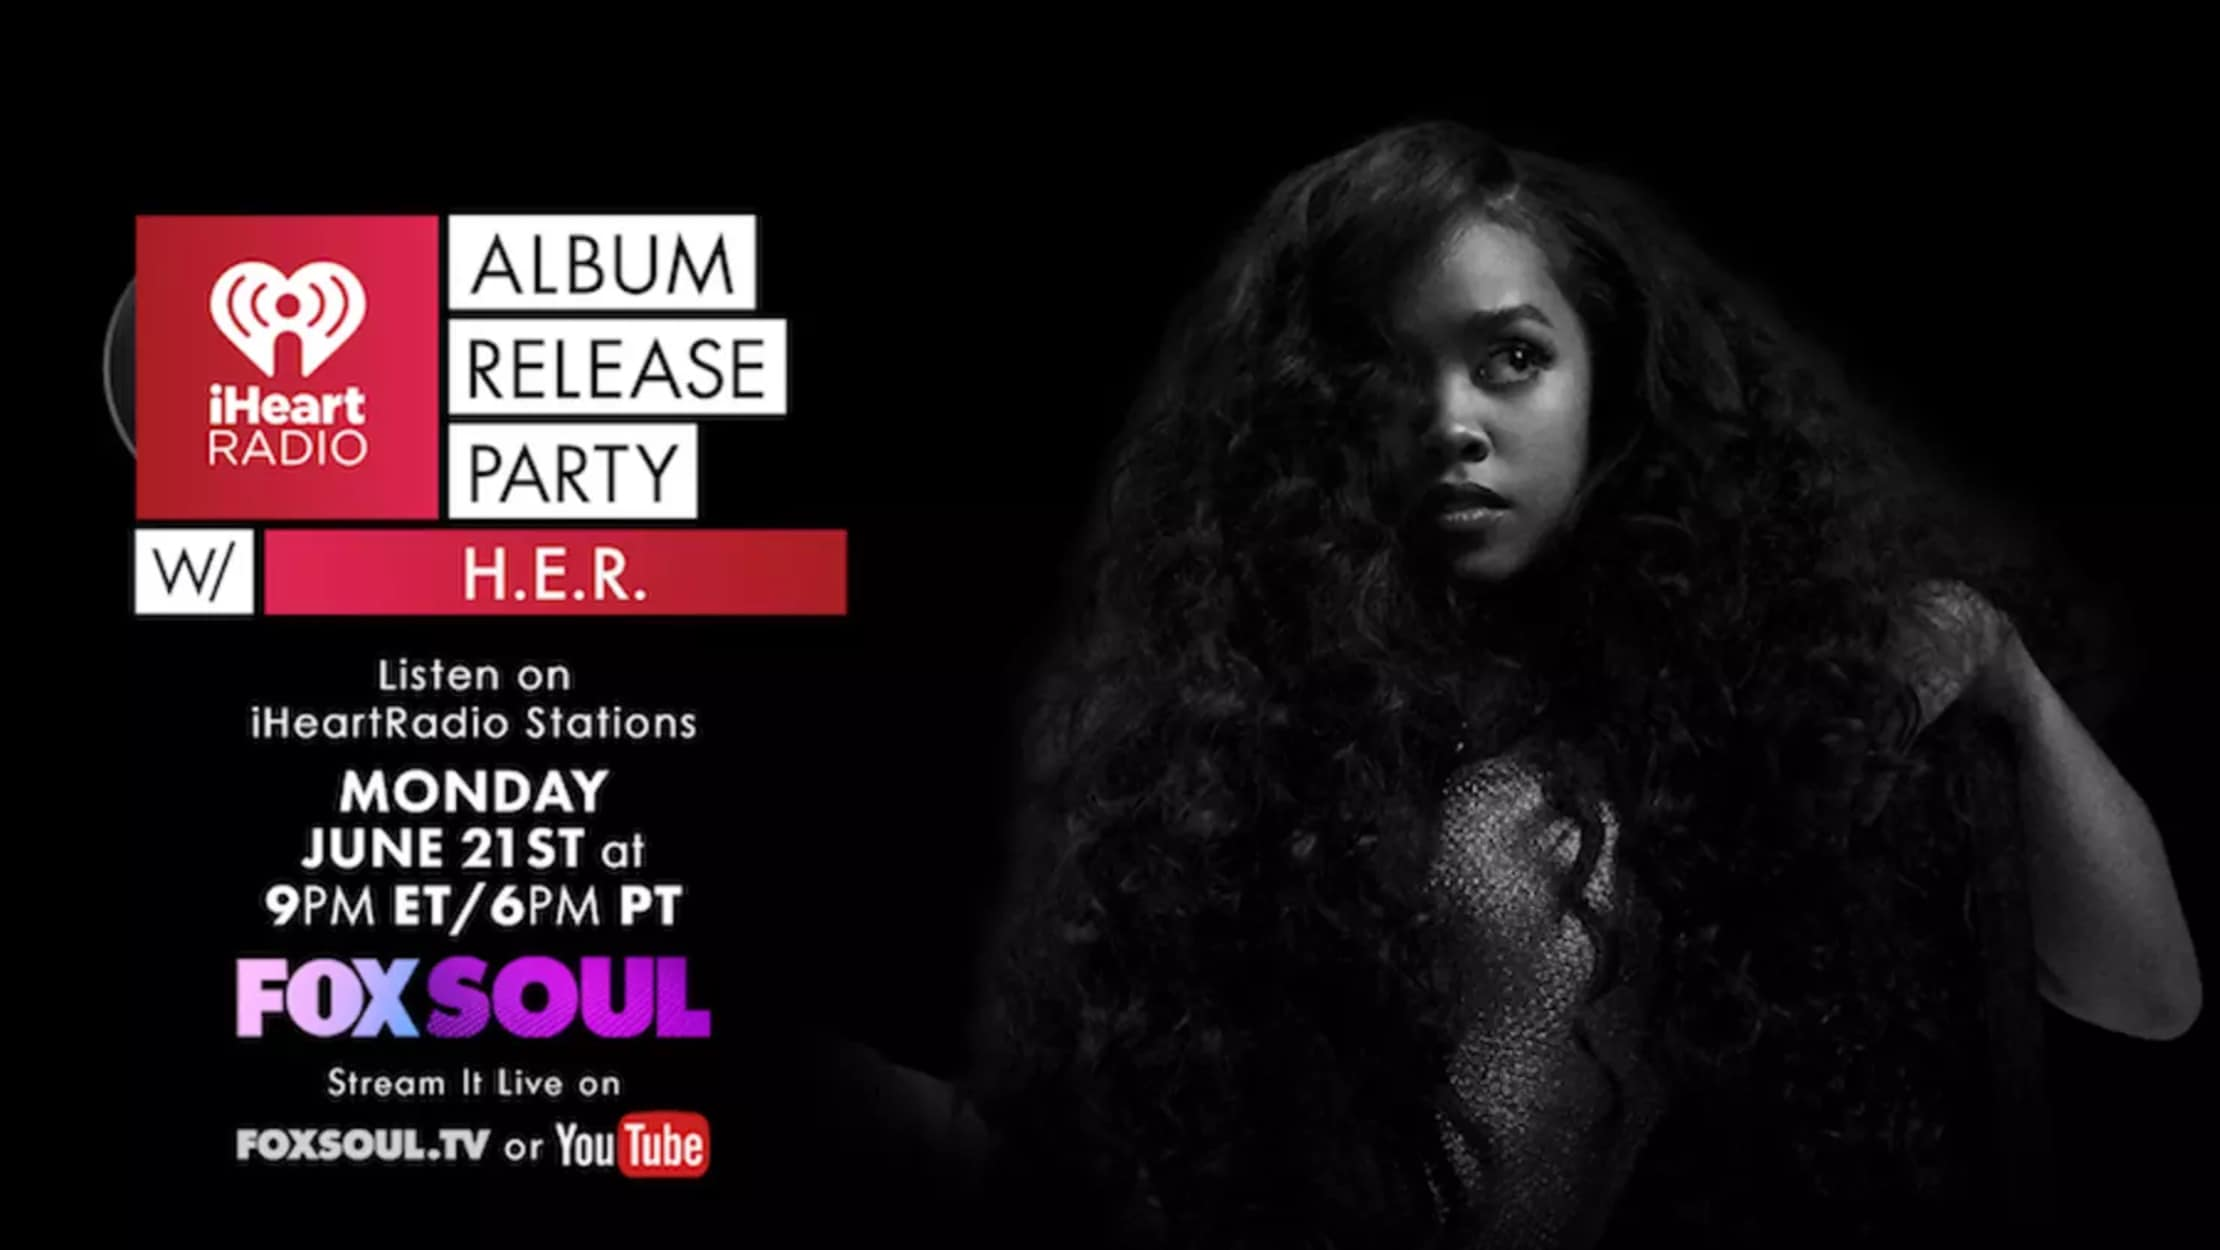 iHeart Radio Listening Party with H.E.R. seriesDetail